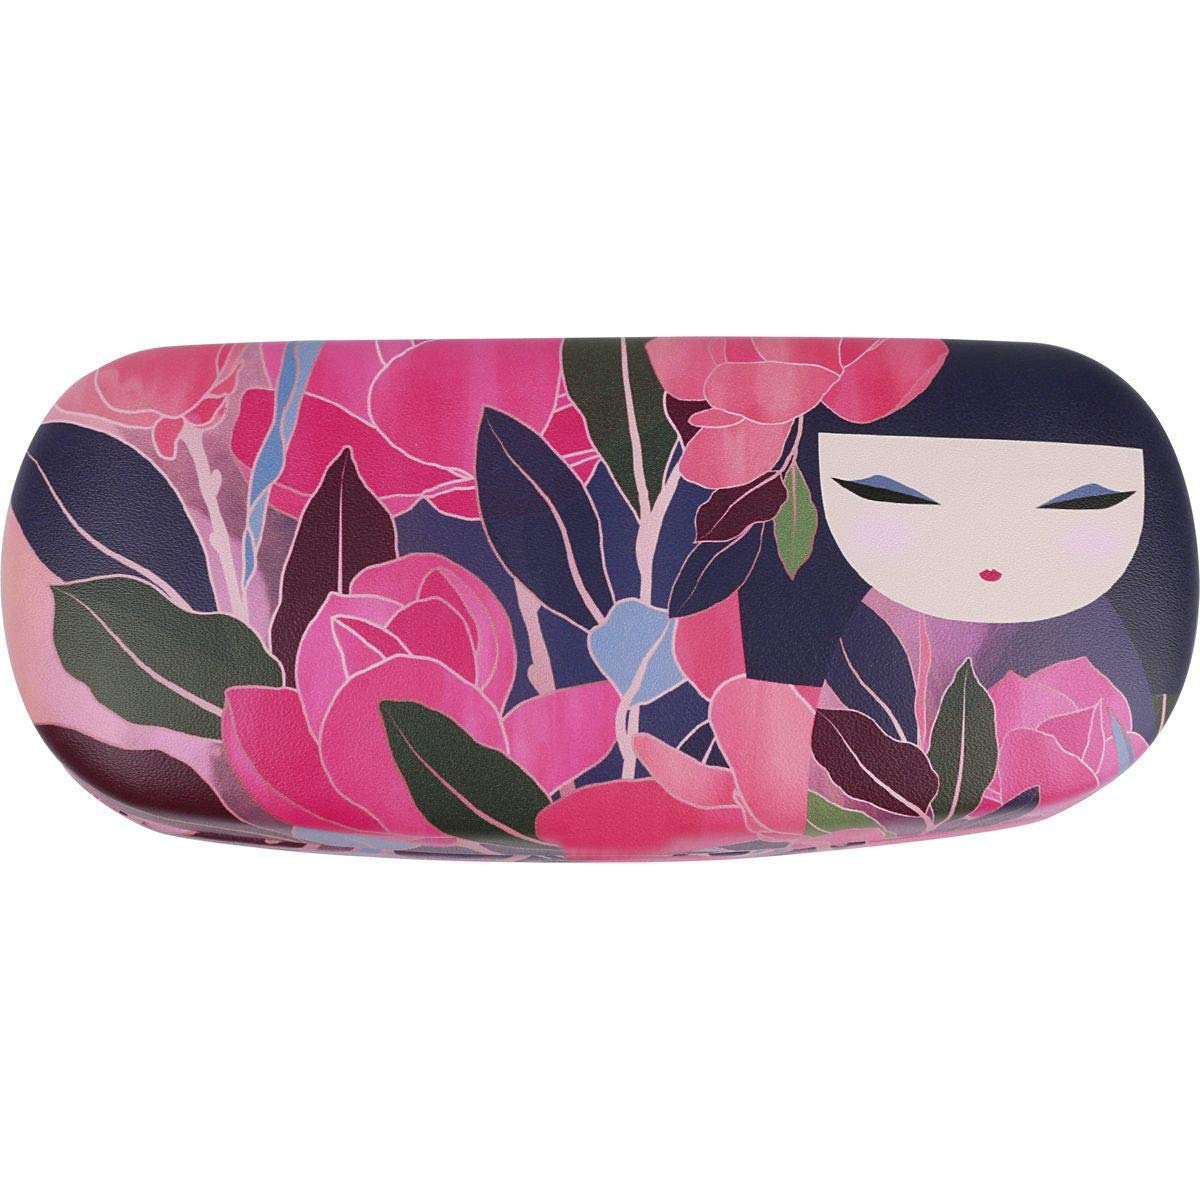 Handmade Russian Glasses case for women, on a solid basis, pink with color print by RuPost